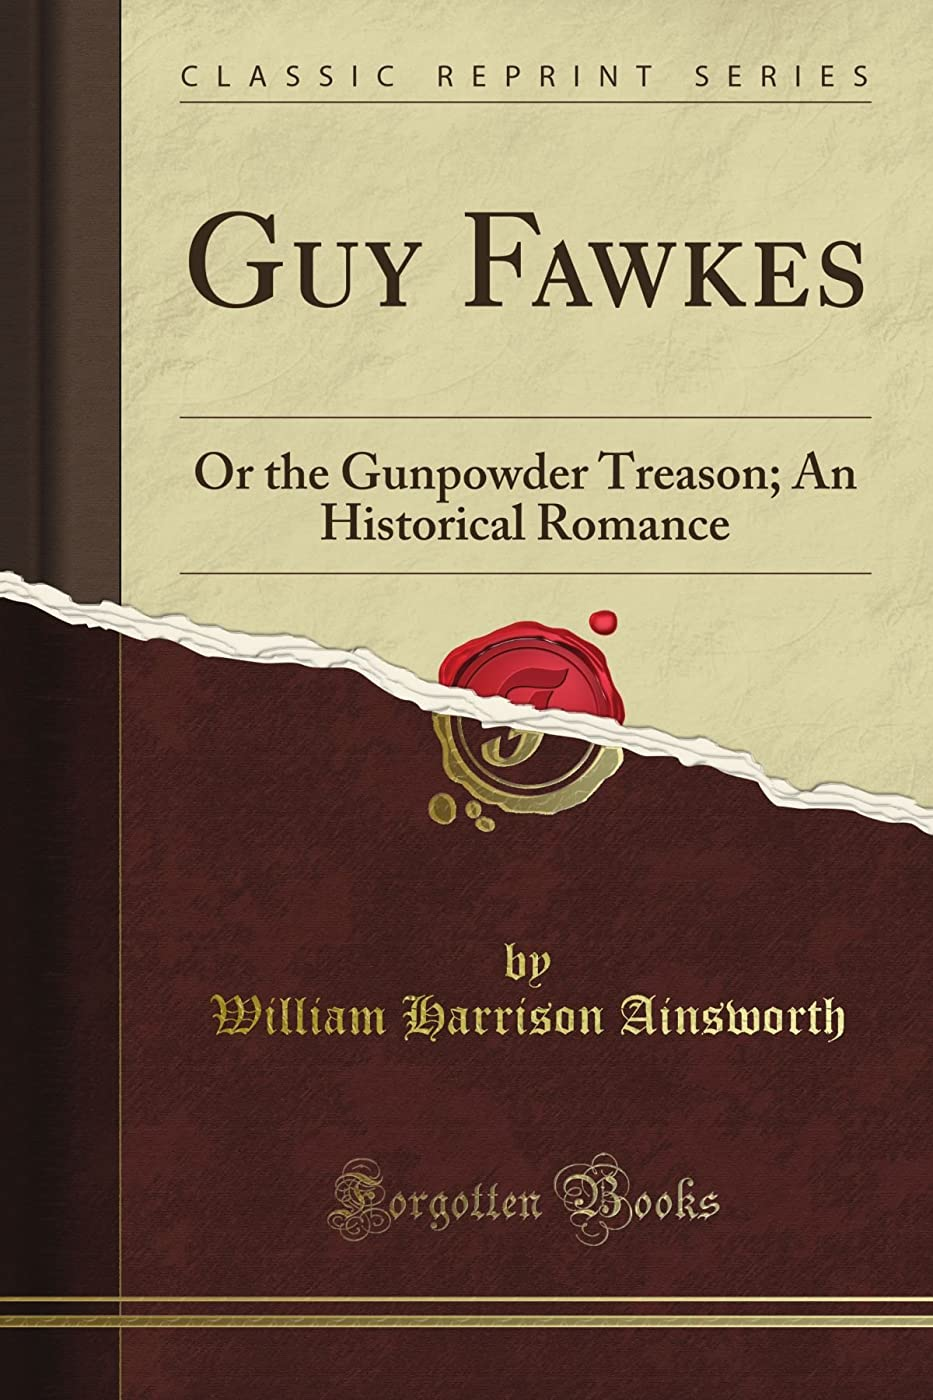 ゲートウェイ最も早い外交問題Guy Fawkes: Or the Gunpowder Treason; An Historical Romance (Classic Reprint)